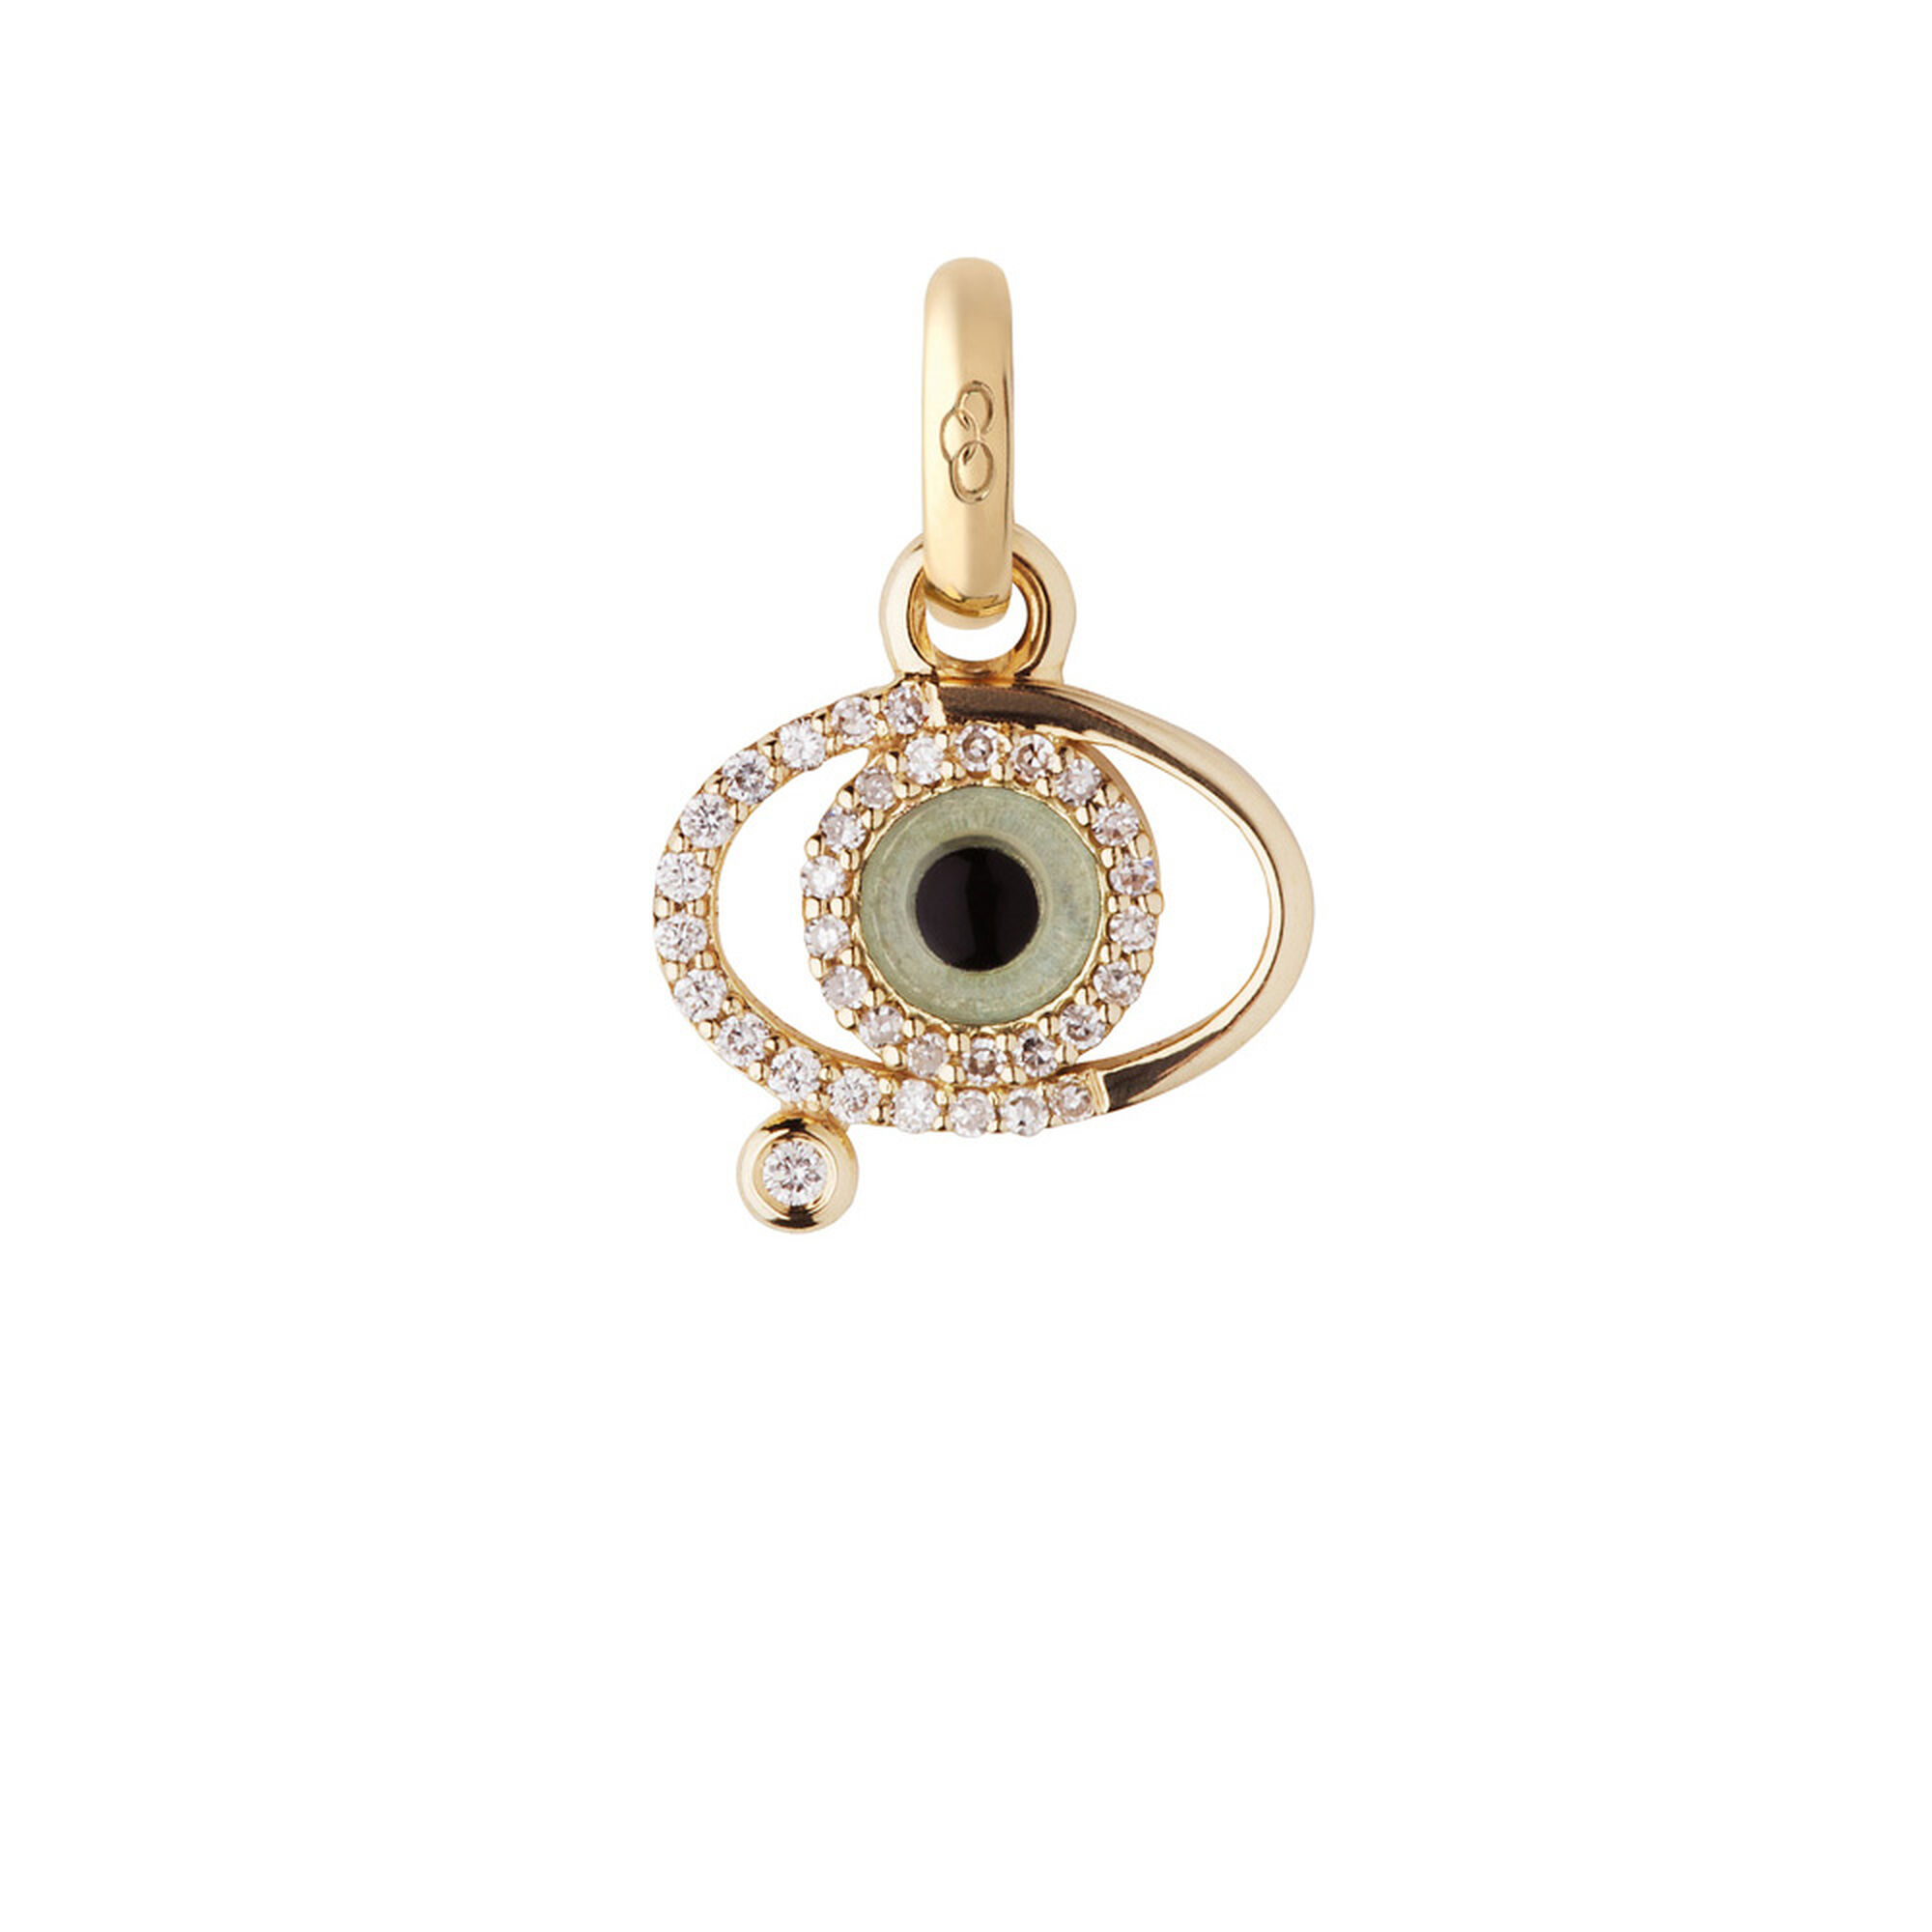 hills jewelry diamond h shipping eye overstock gold today free beverly charm gemstone product watches i tdw evil necklace